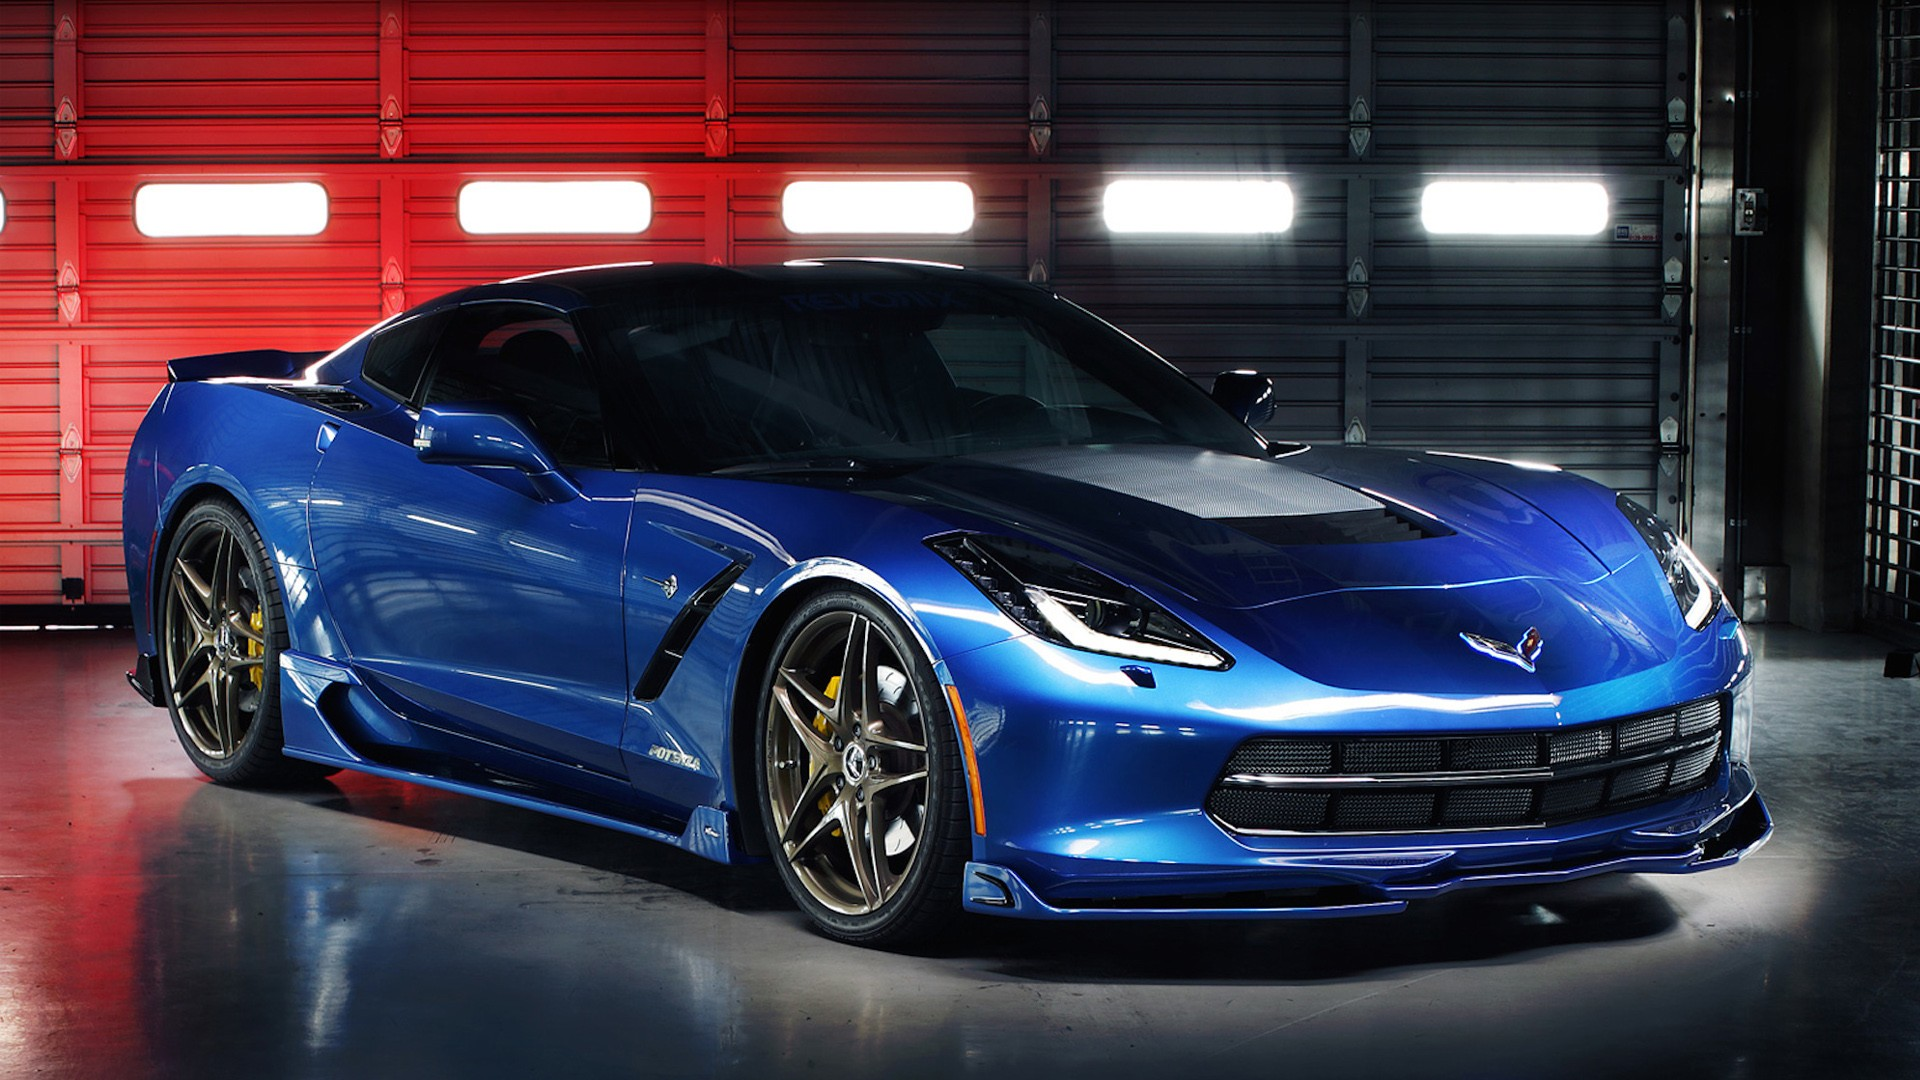 2014 Revorix Chevrolet Corvette Wallpaper Hd Car